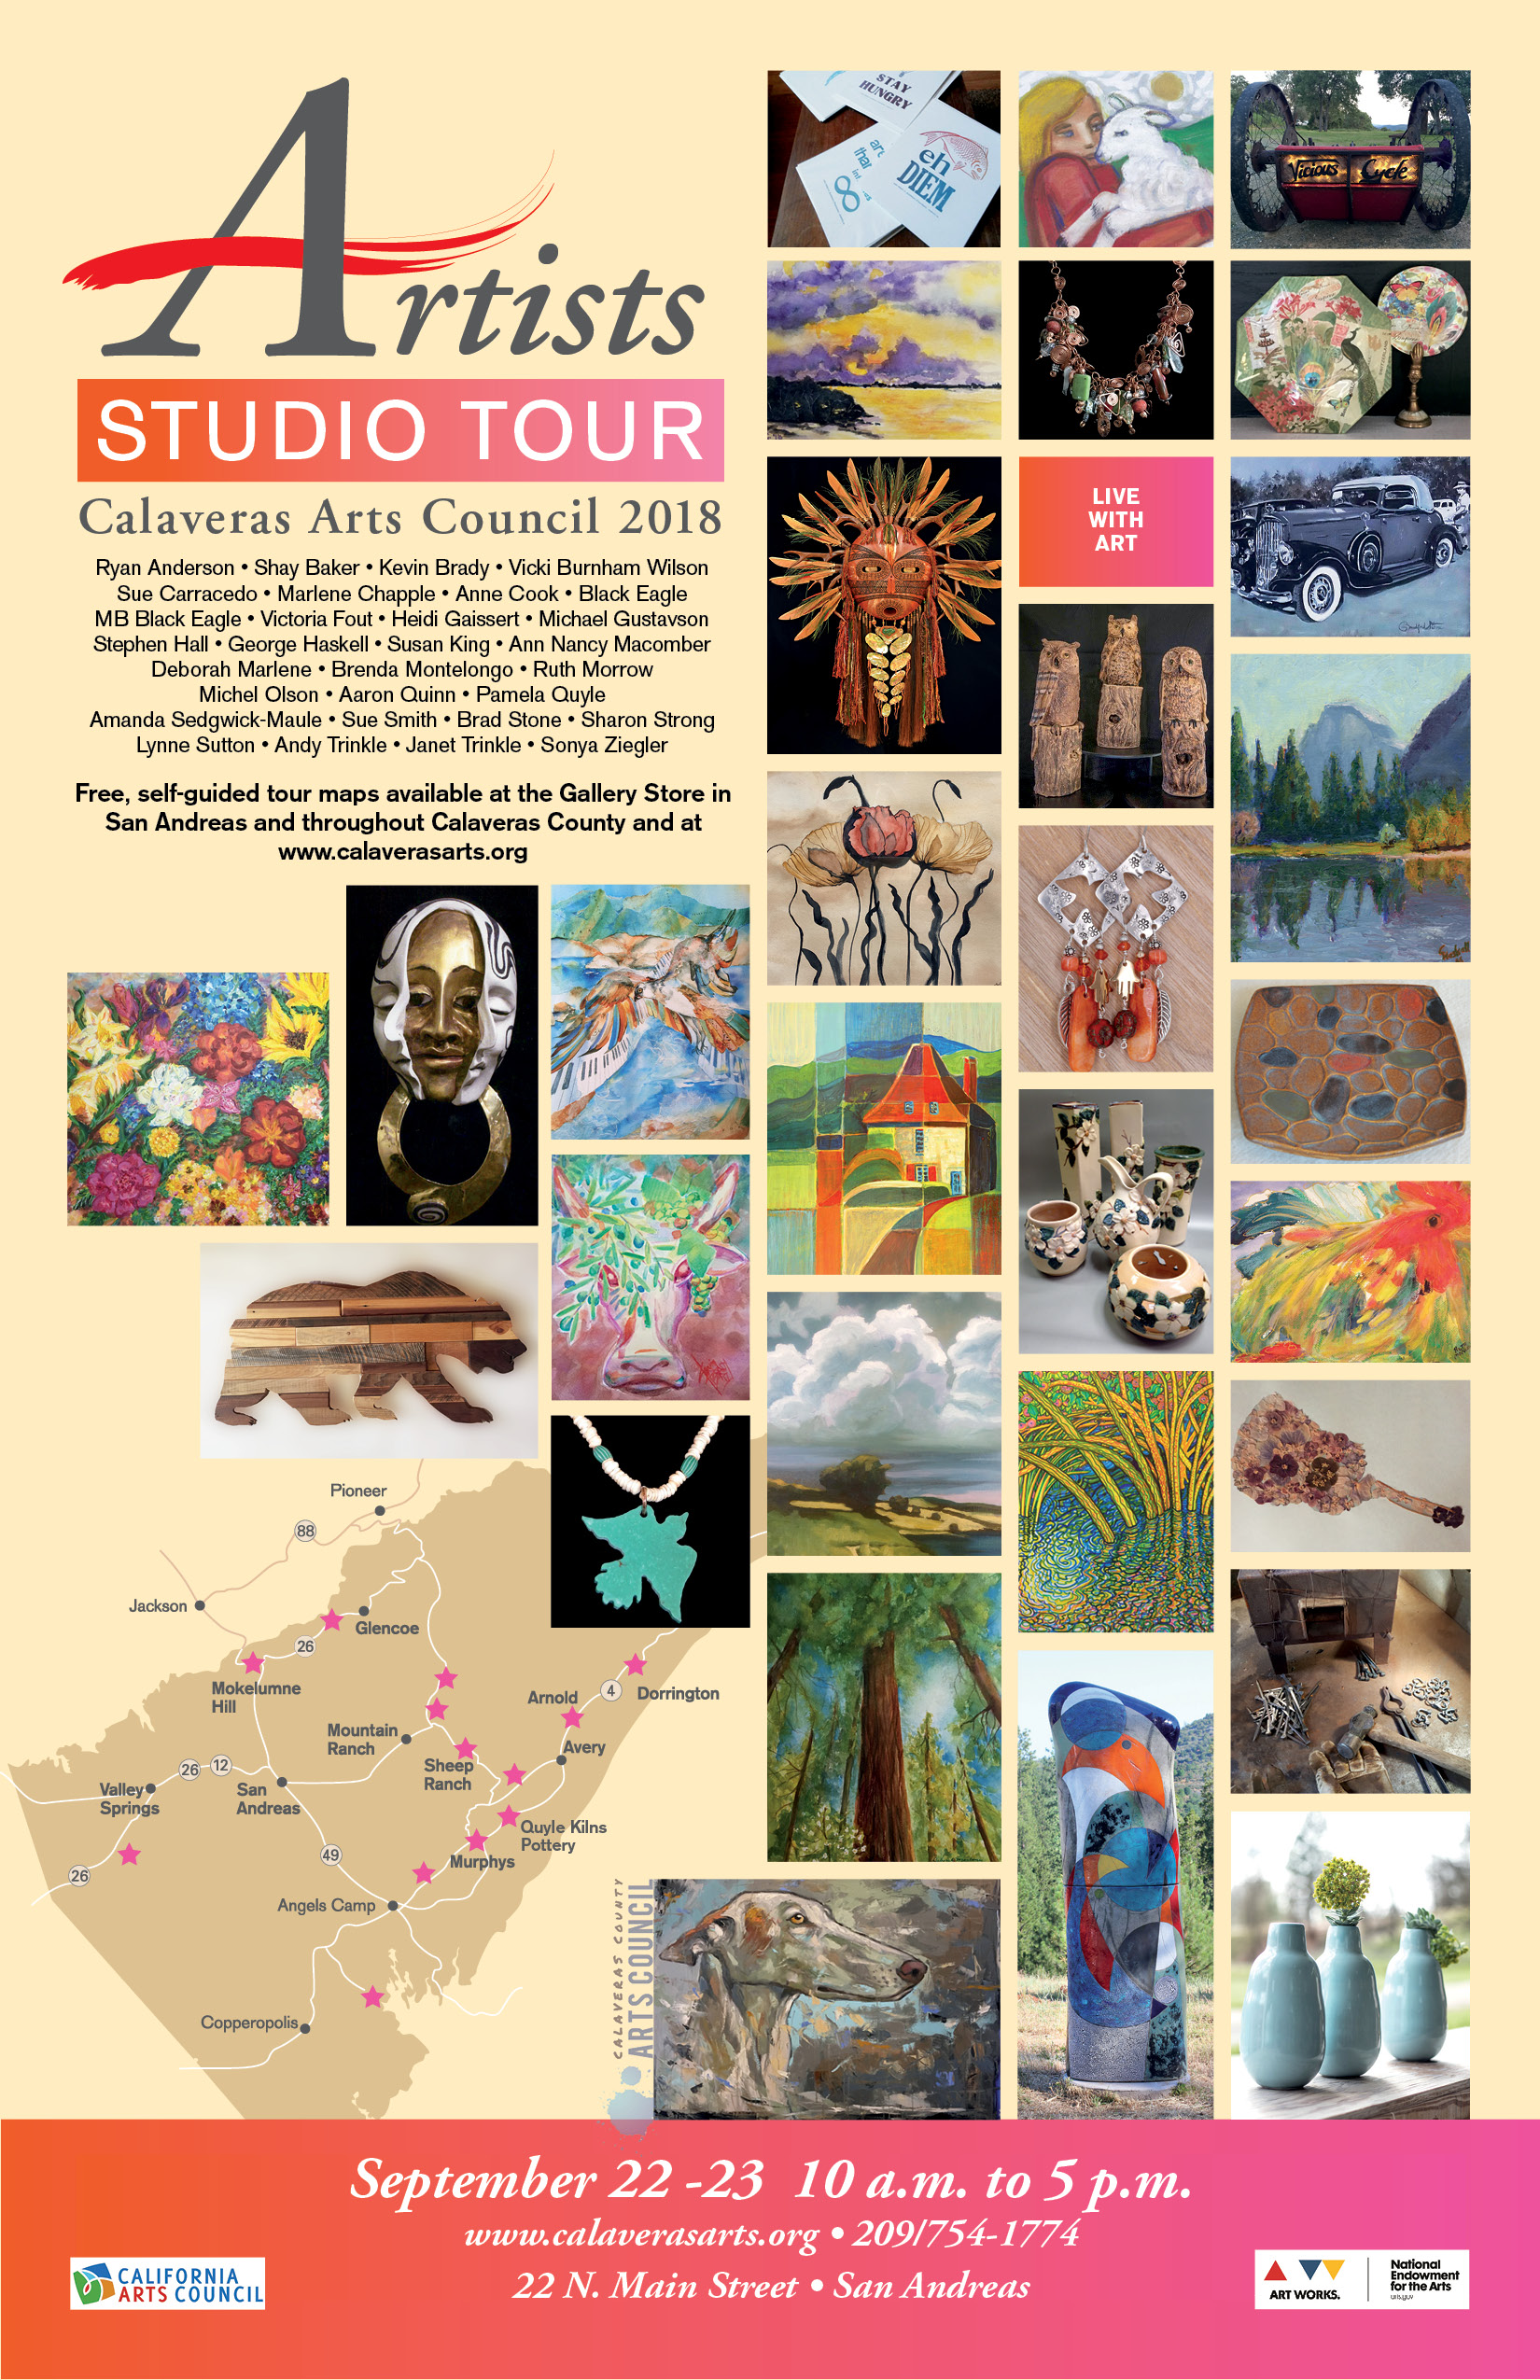 "Artists STudio tours - Client: Calaveras County Arts CouncilMarketing campaign for arts council tour of local artists.Included:•Eye-catching poster attracted attention and carried brand and event awareness through community and in tourist spots•Targeted social media ads reached audiences throughout the MotherLode, the Central Valley, and the San Francisco Bay Area.•Listings and maps available on client website as downloadable pdfs that could be printed in color or in black and white.•A four-color 11"" x 17 "" two-fold brochure featuring work by all the artists, listings, a large map and individual maps leading to each site.•Press releases tailored to various print, web and social media. Releases are highly successful, with a high rate of placement in local media. Read blog post."